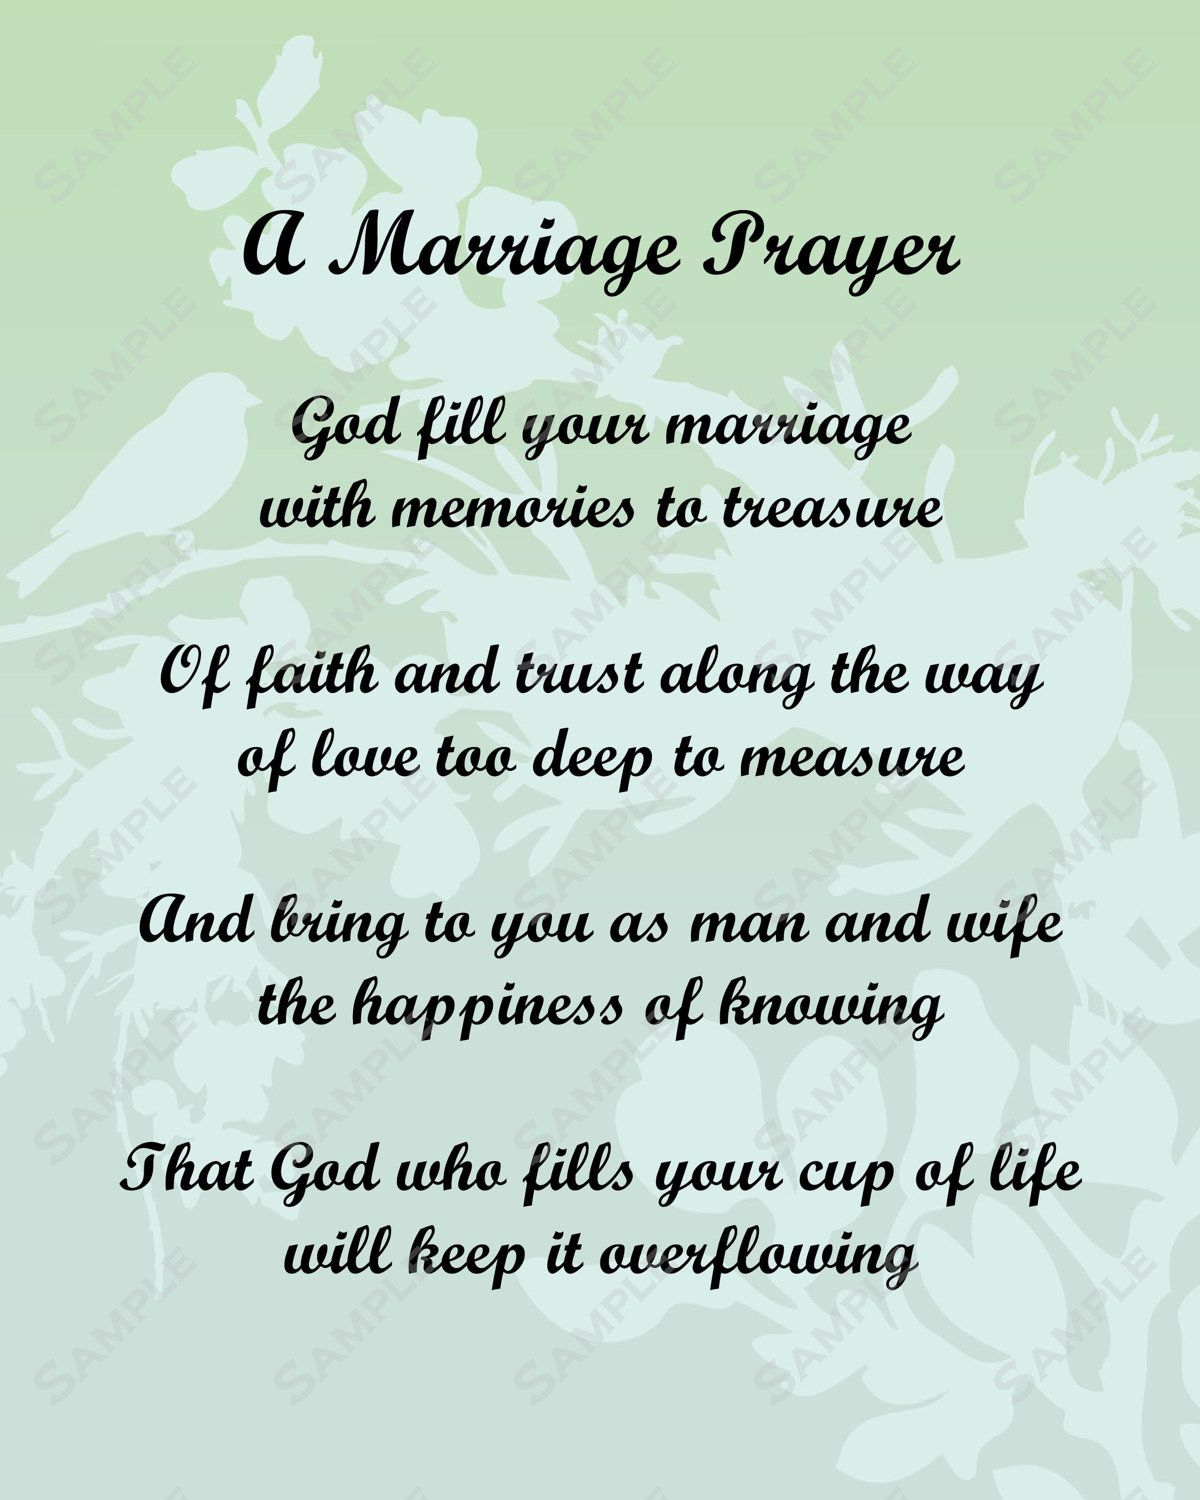 pick a poem for bride and groom | Marriage Prayer Poem ...